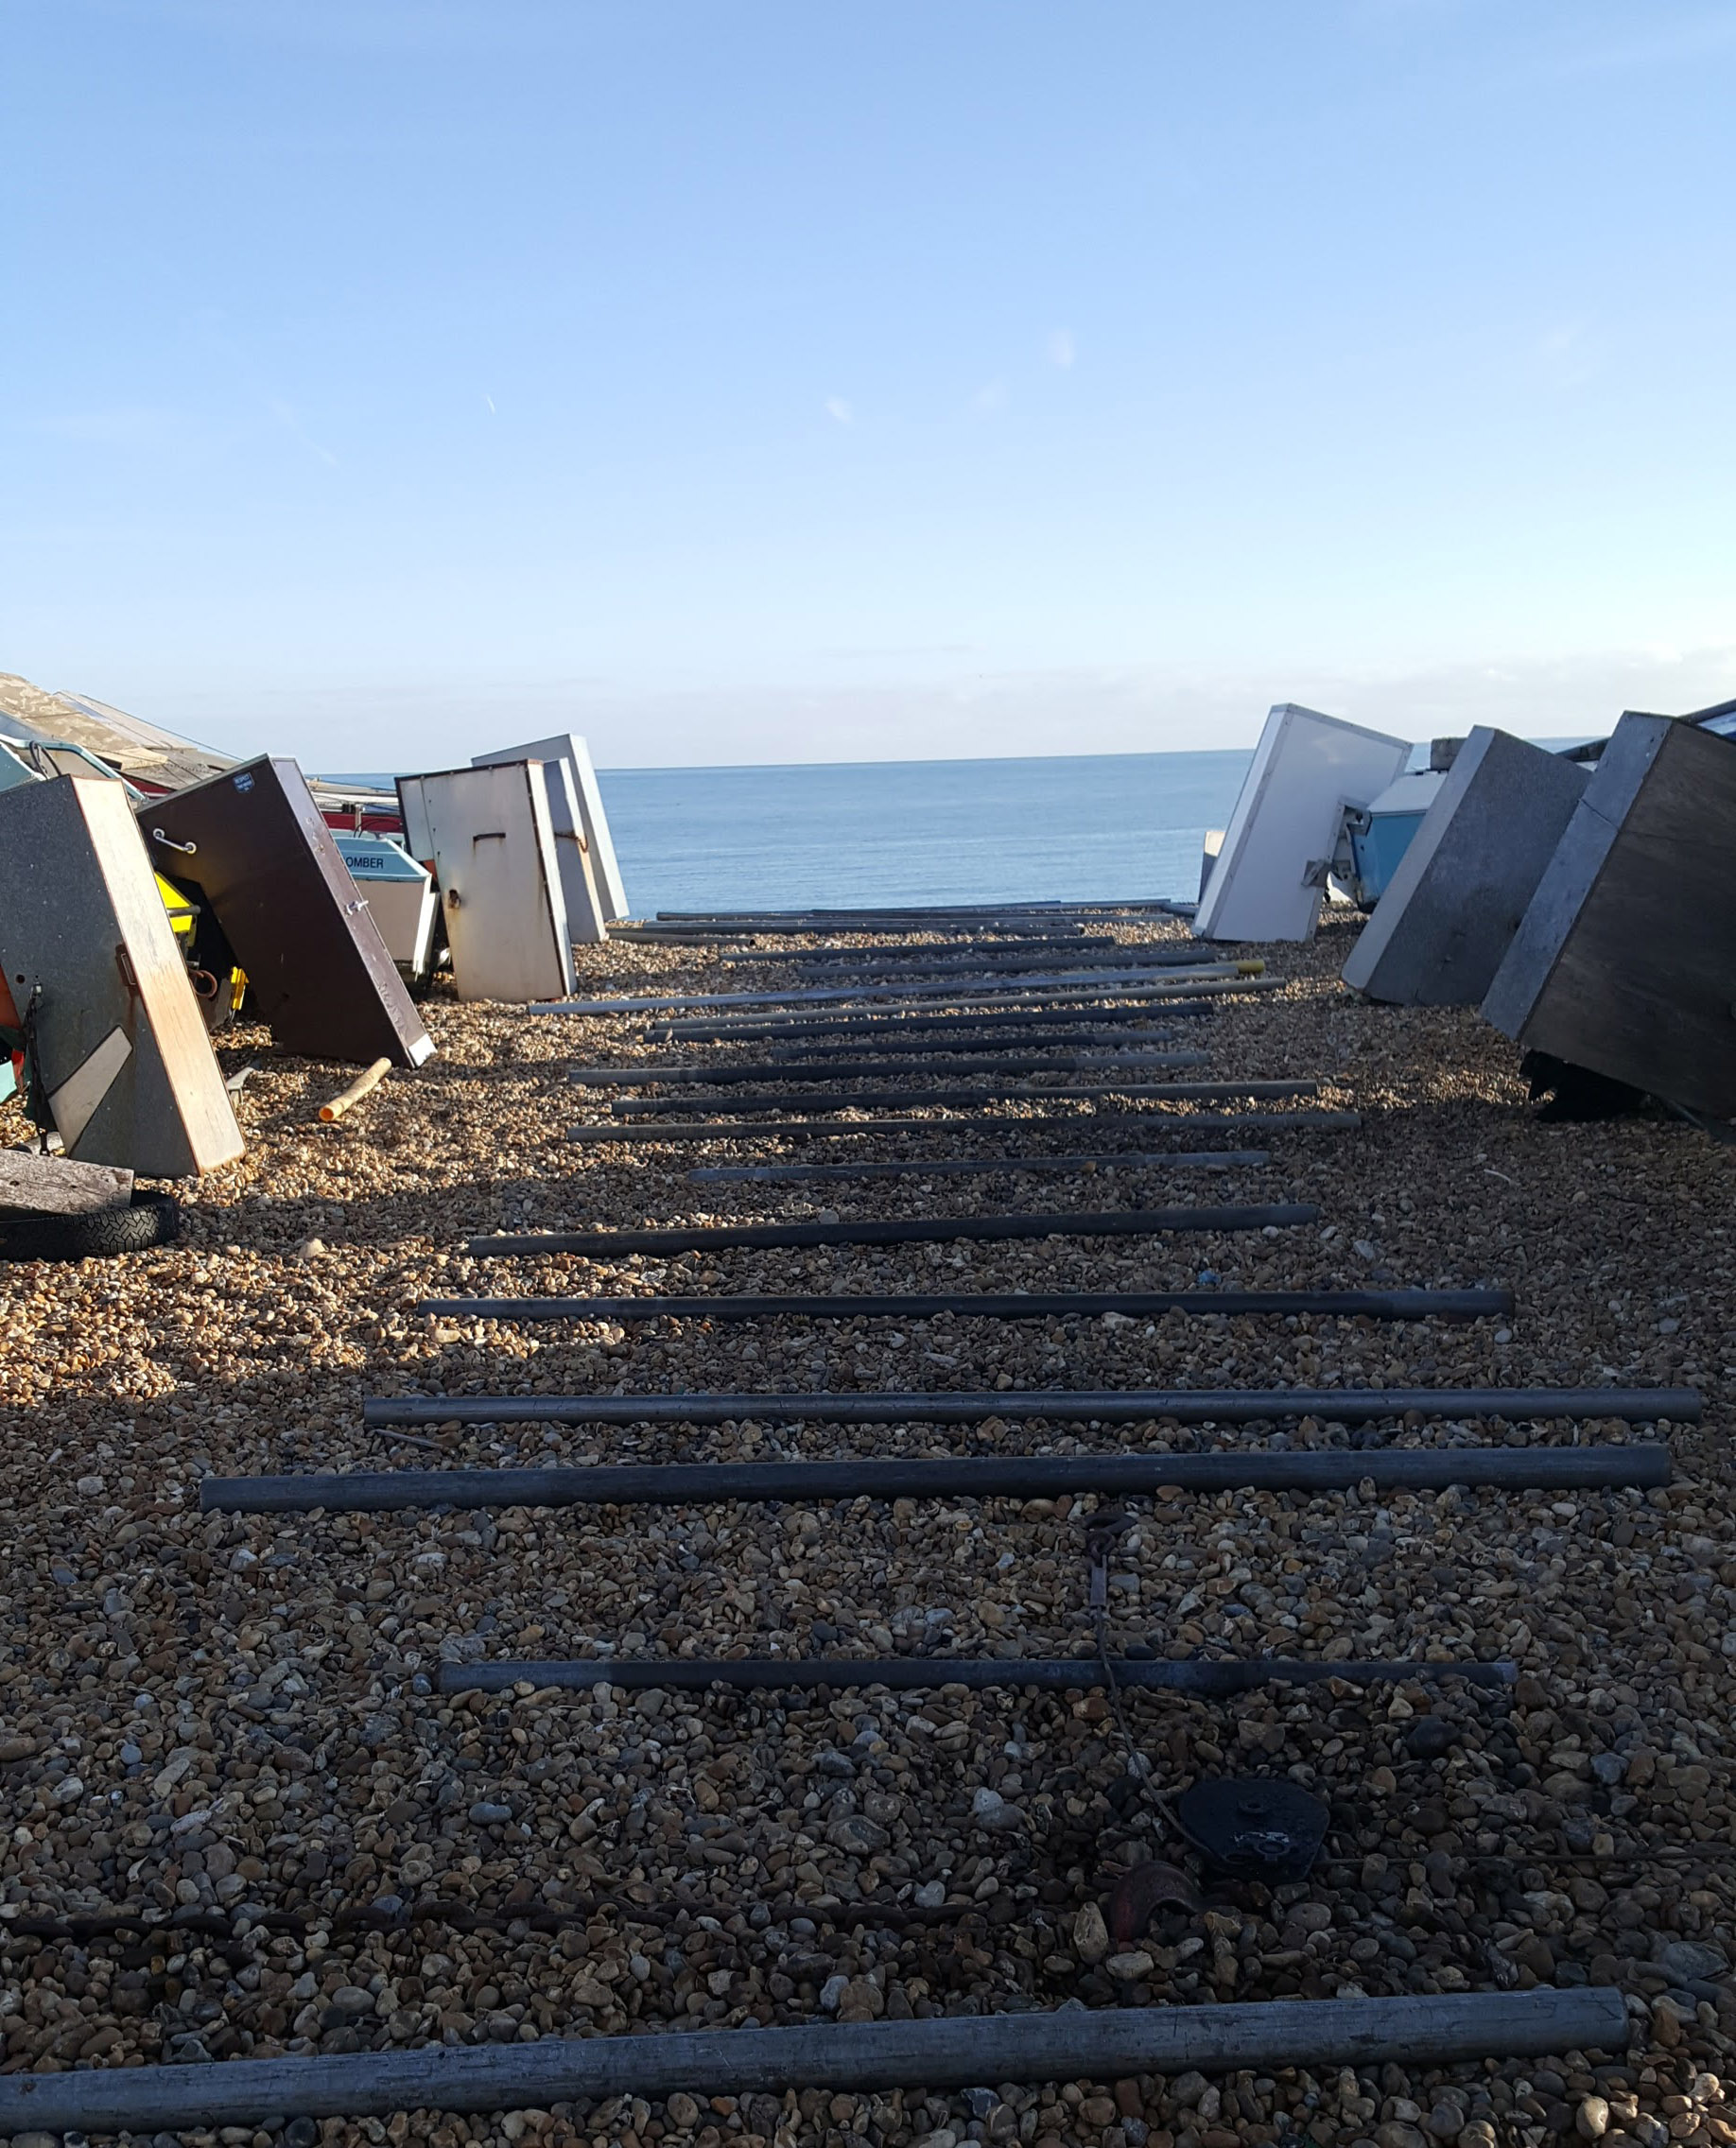 Slipway on the beach | An Eastbourne Diary